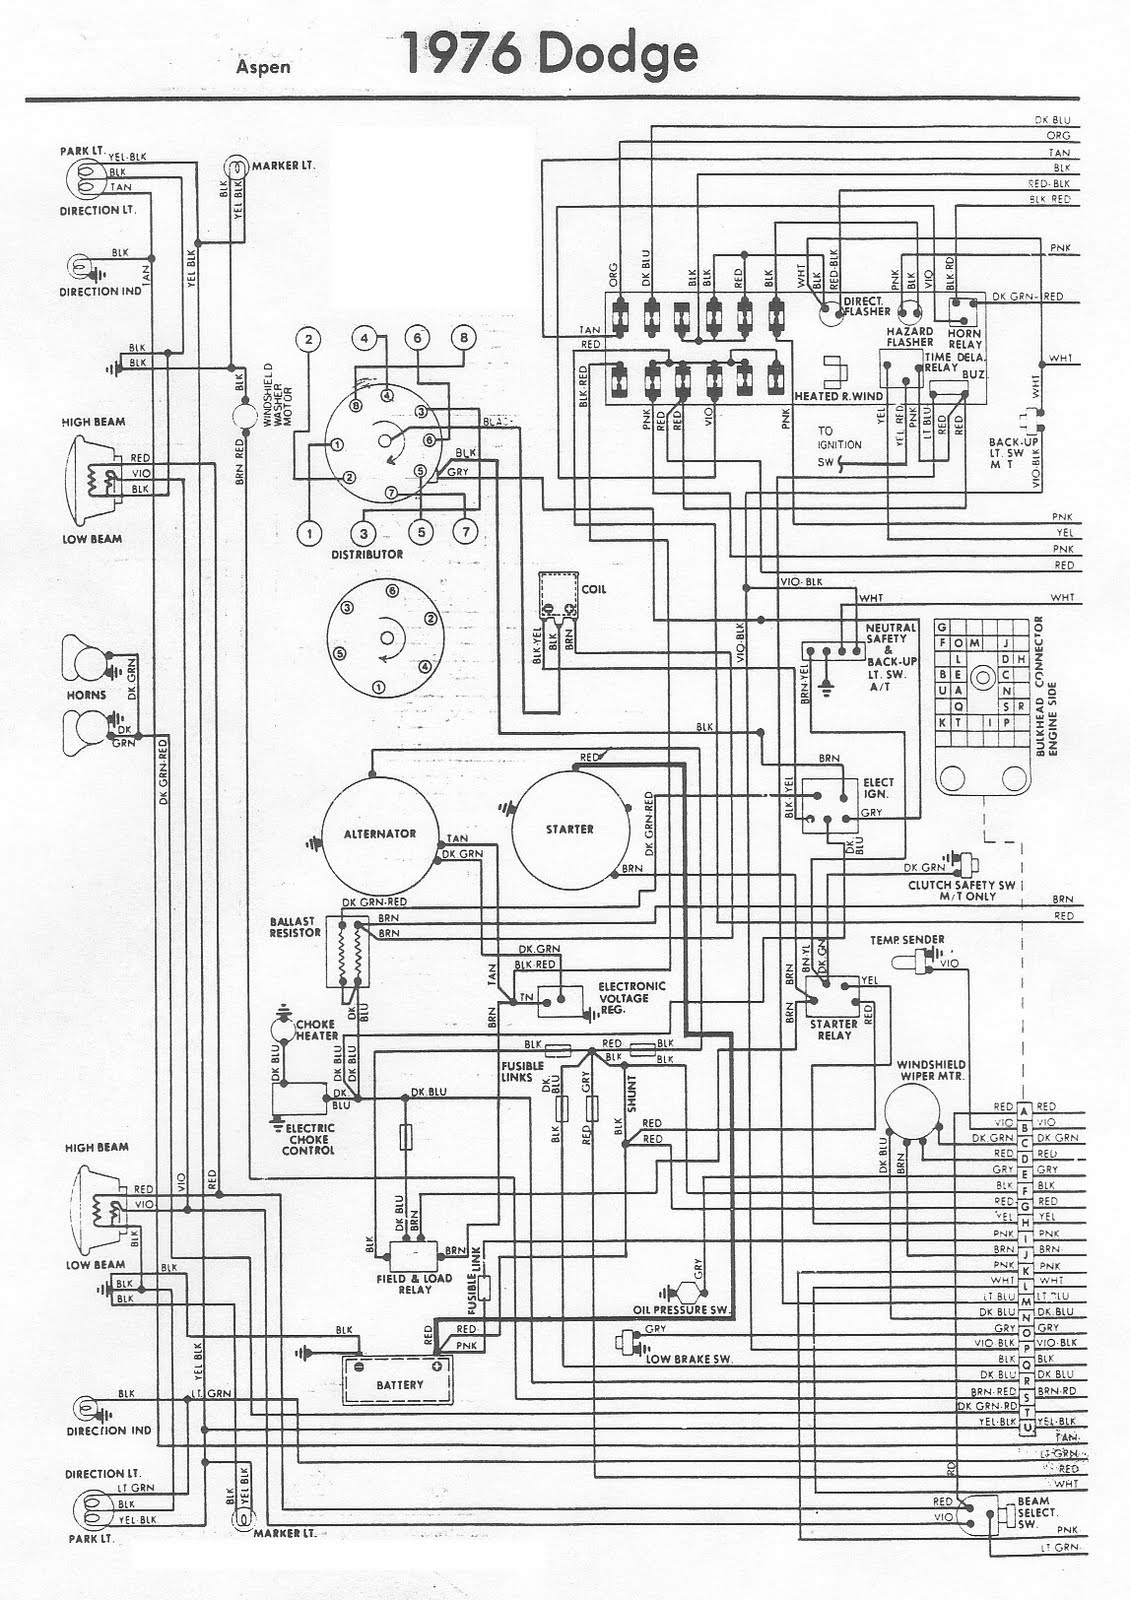 Captivating 1971 BMW 2002 Wiring Diagram Pictures - Best Image Wire ...